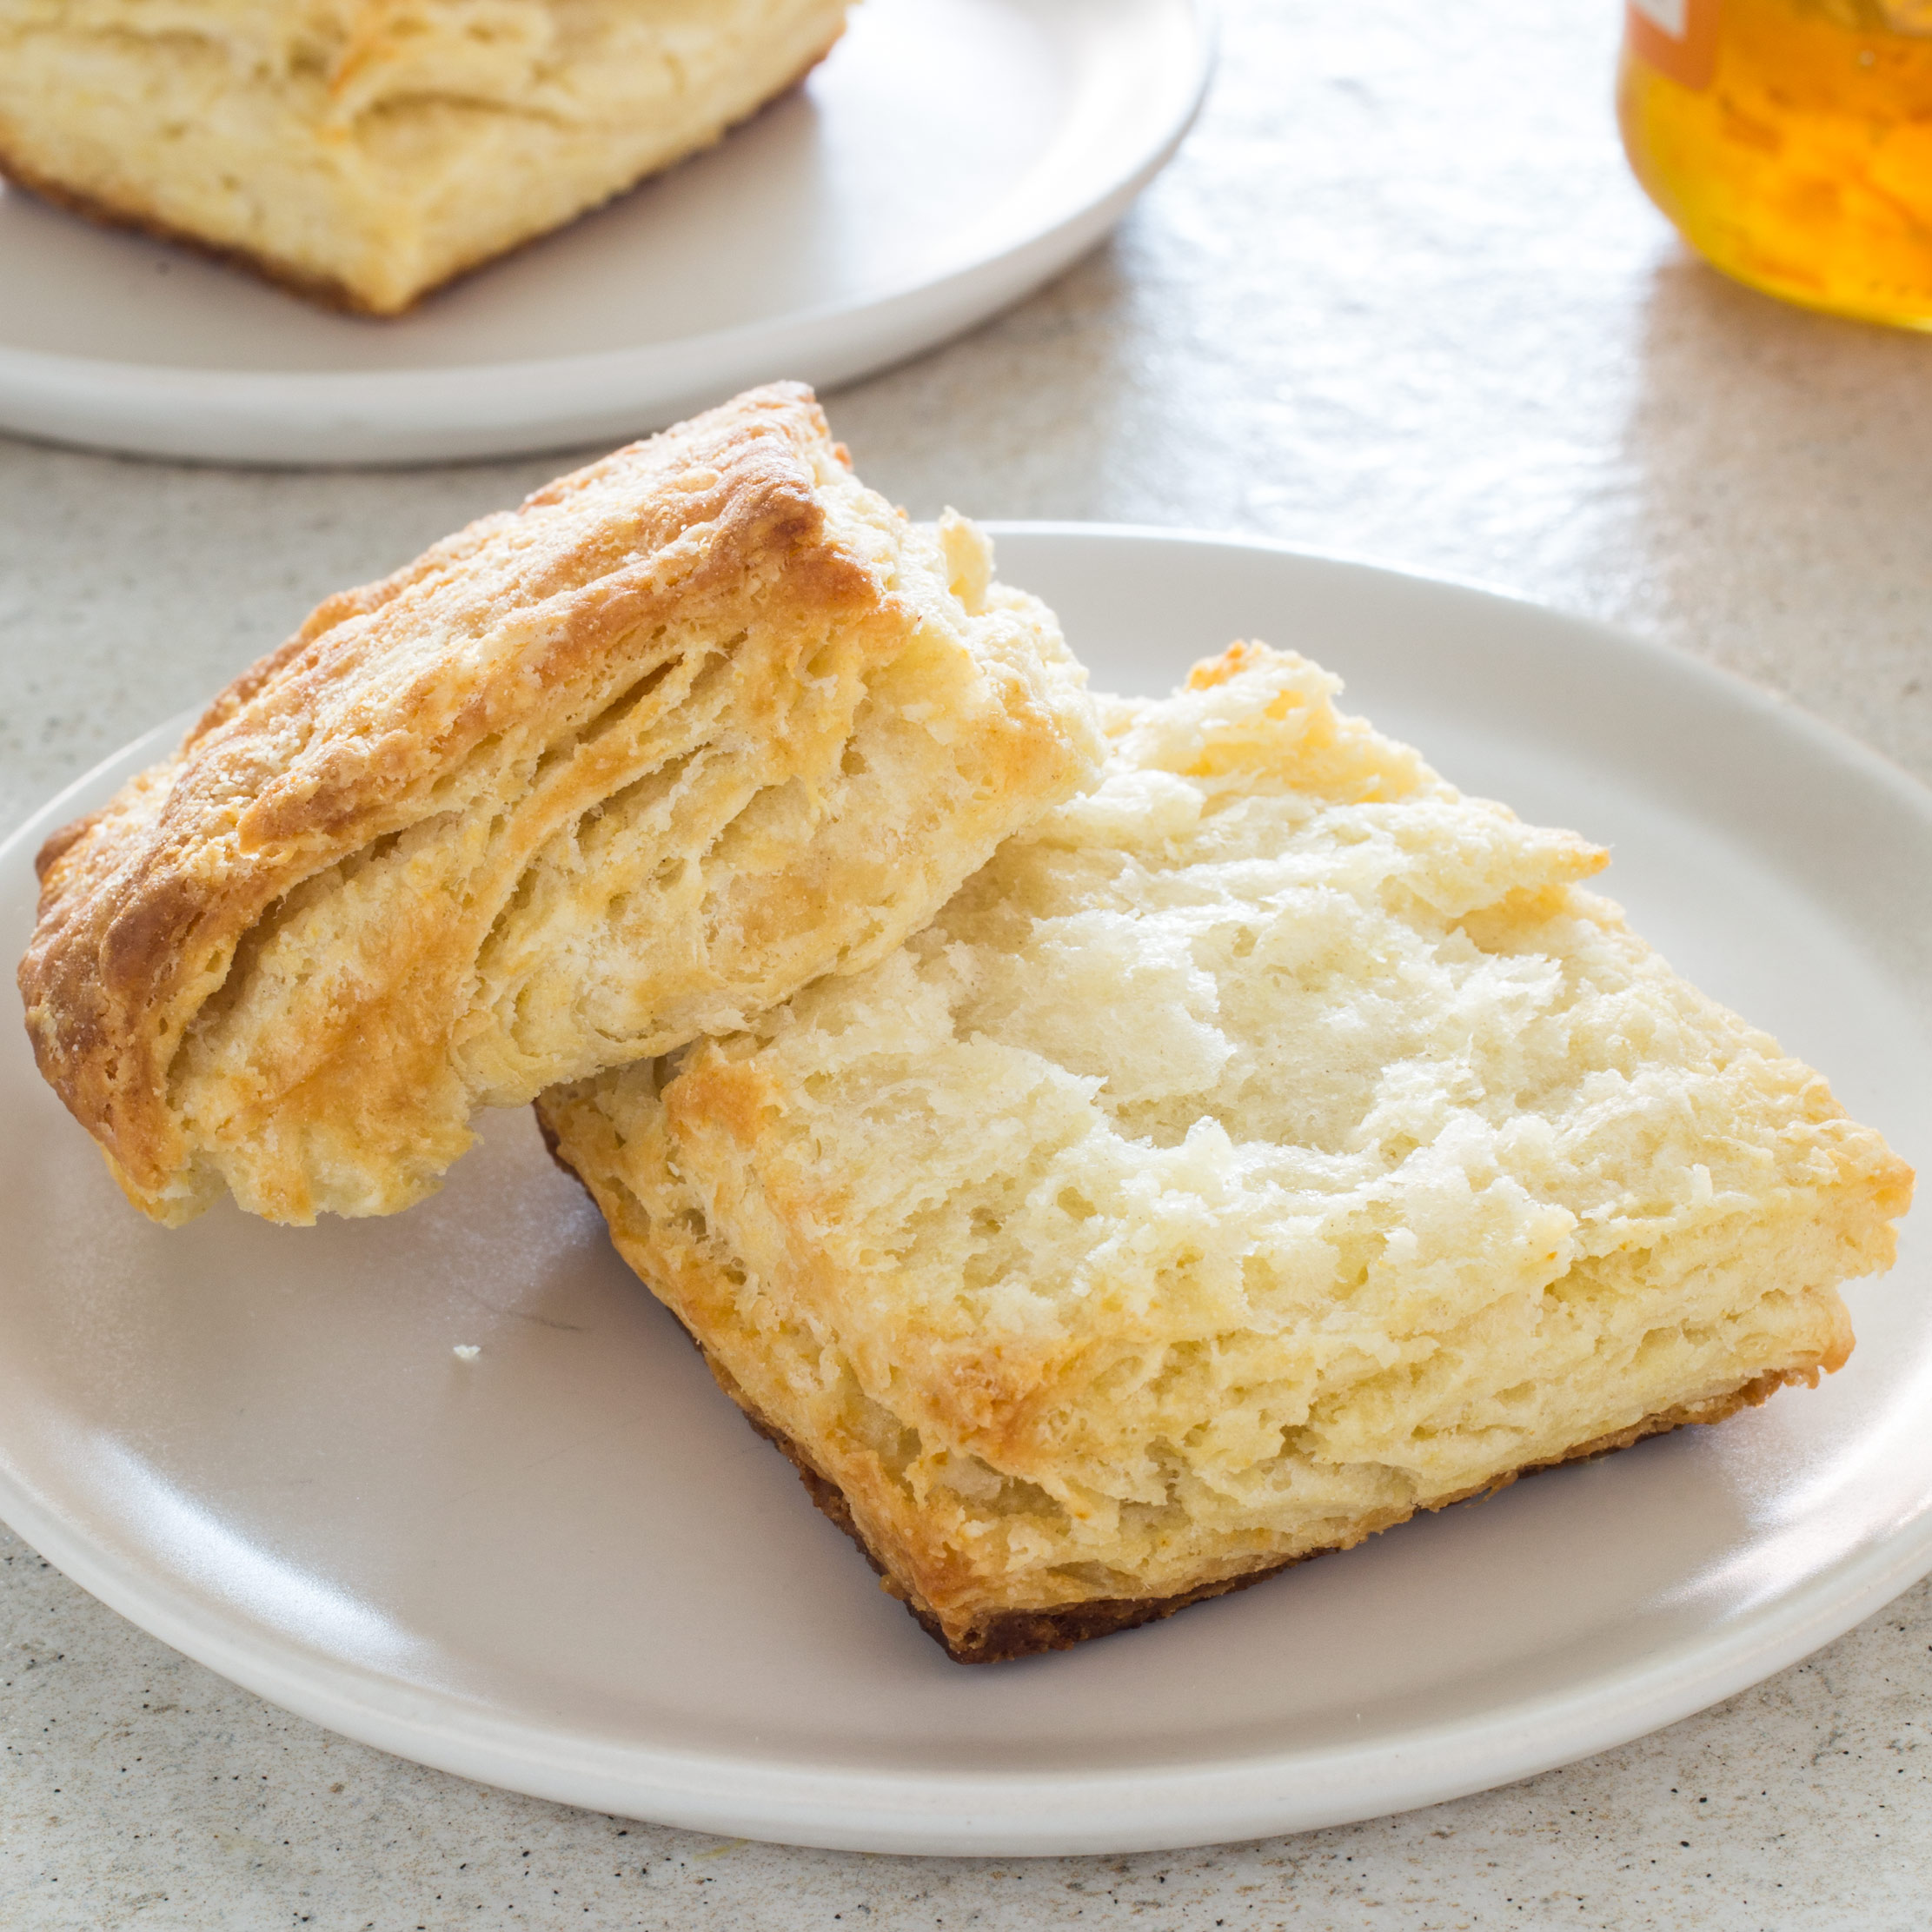 SFS_flaky_buttermilk_biscuits-50.jpg